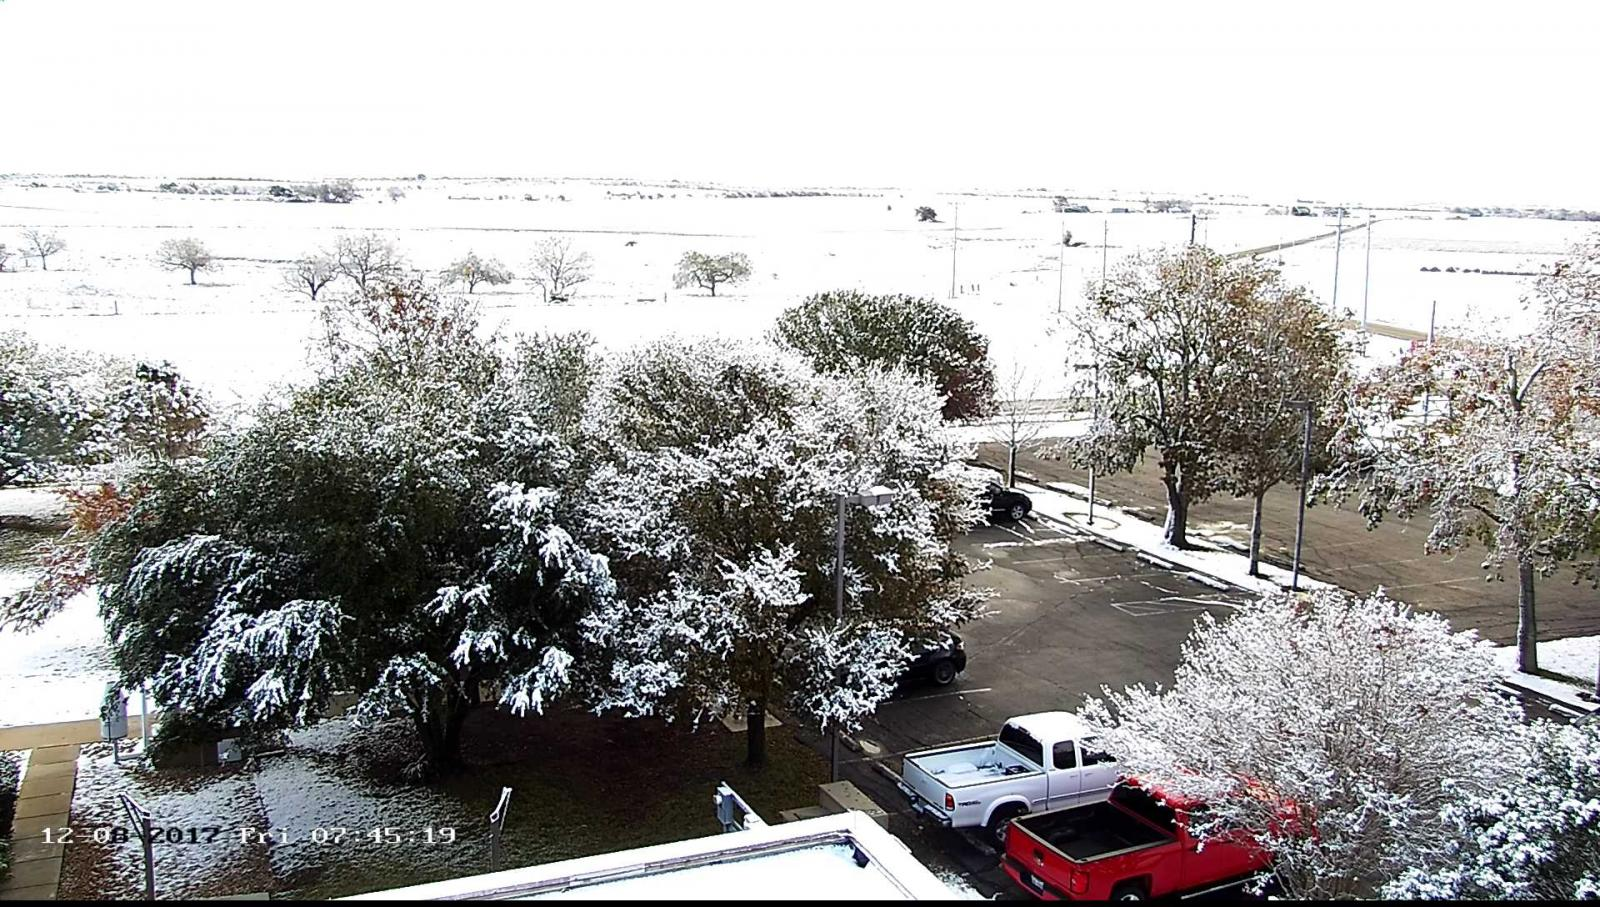 NWS Austin/San Antonio Weather Forecast Office Parking Lot